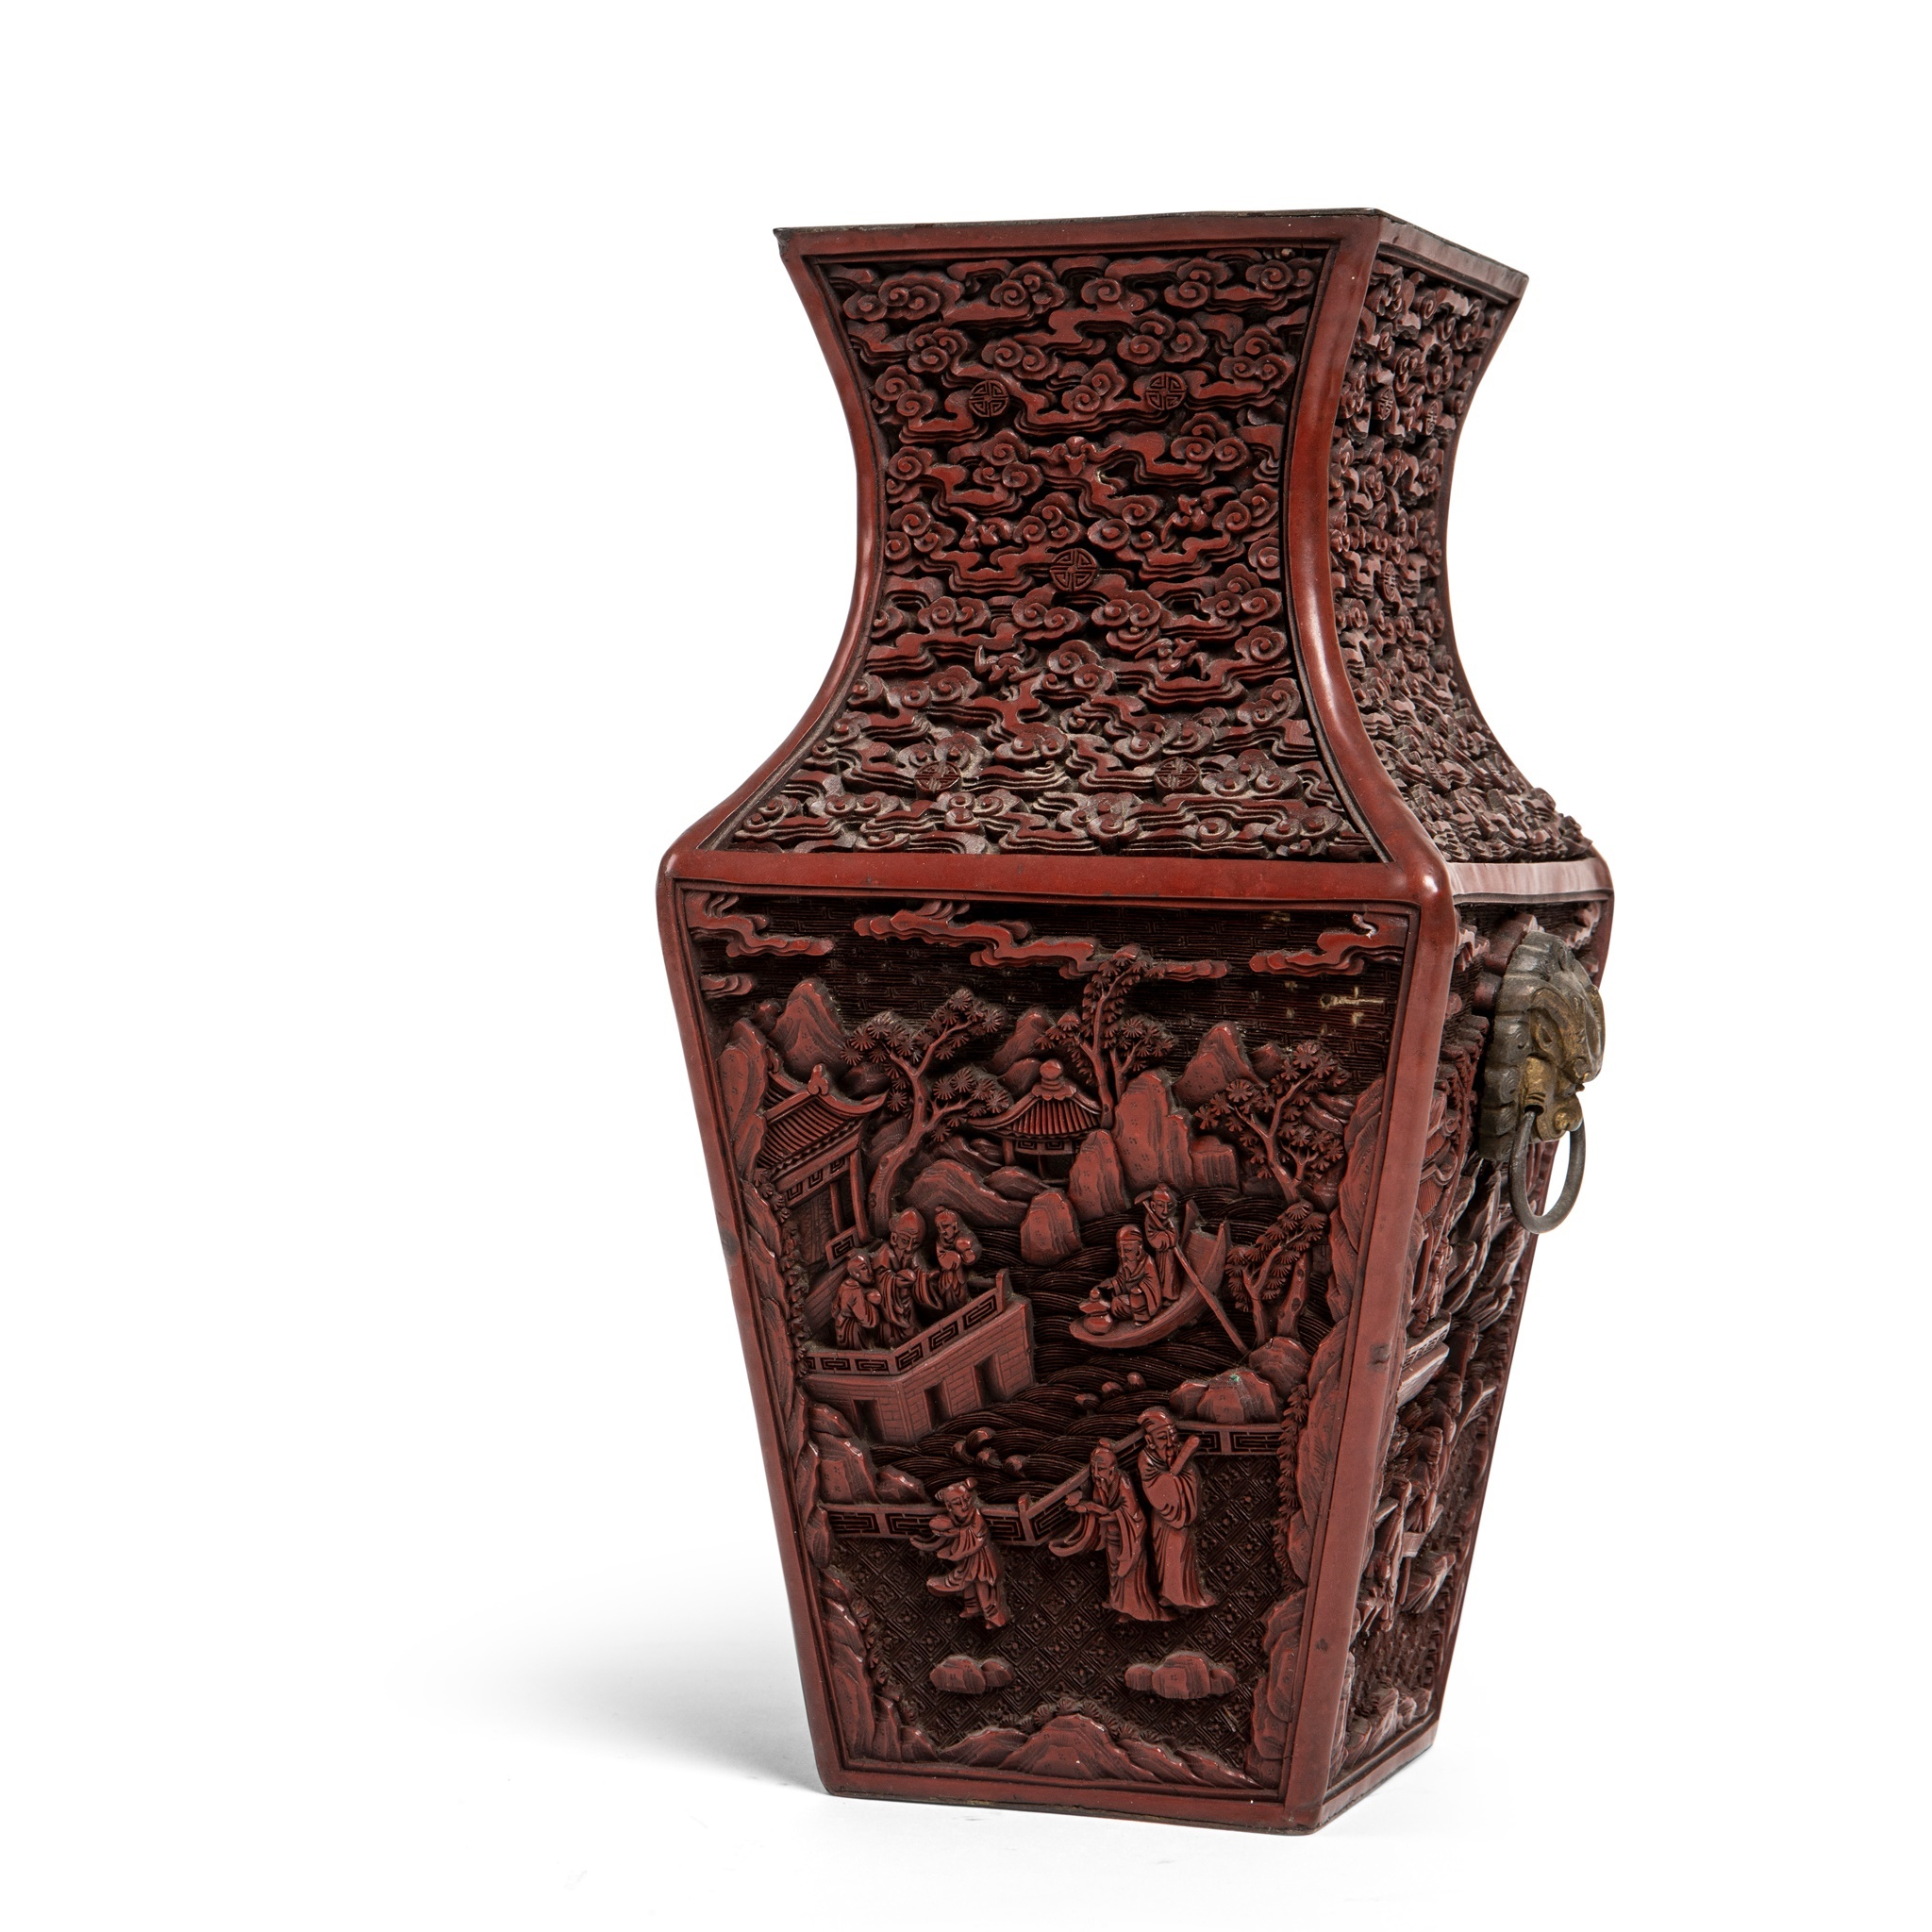 CINNABAR LACQUER SQUARE-SECTIONED VASE | QING DYNASTY, 19TH CENTURY, Provenance: Private Scottish collection, Glasgow, c. 1900, thence by descent, 26.2cm high